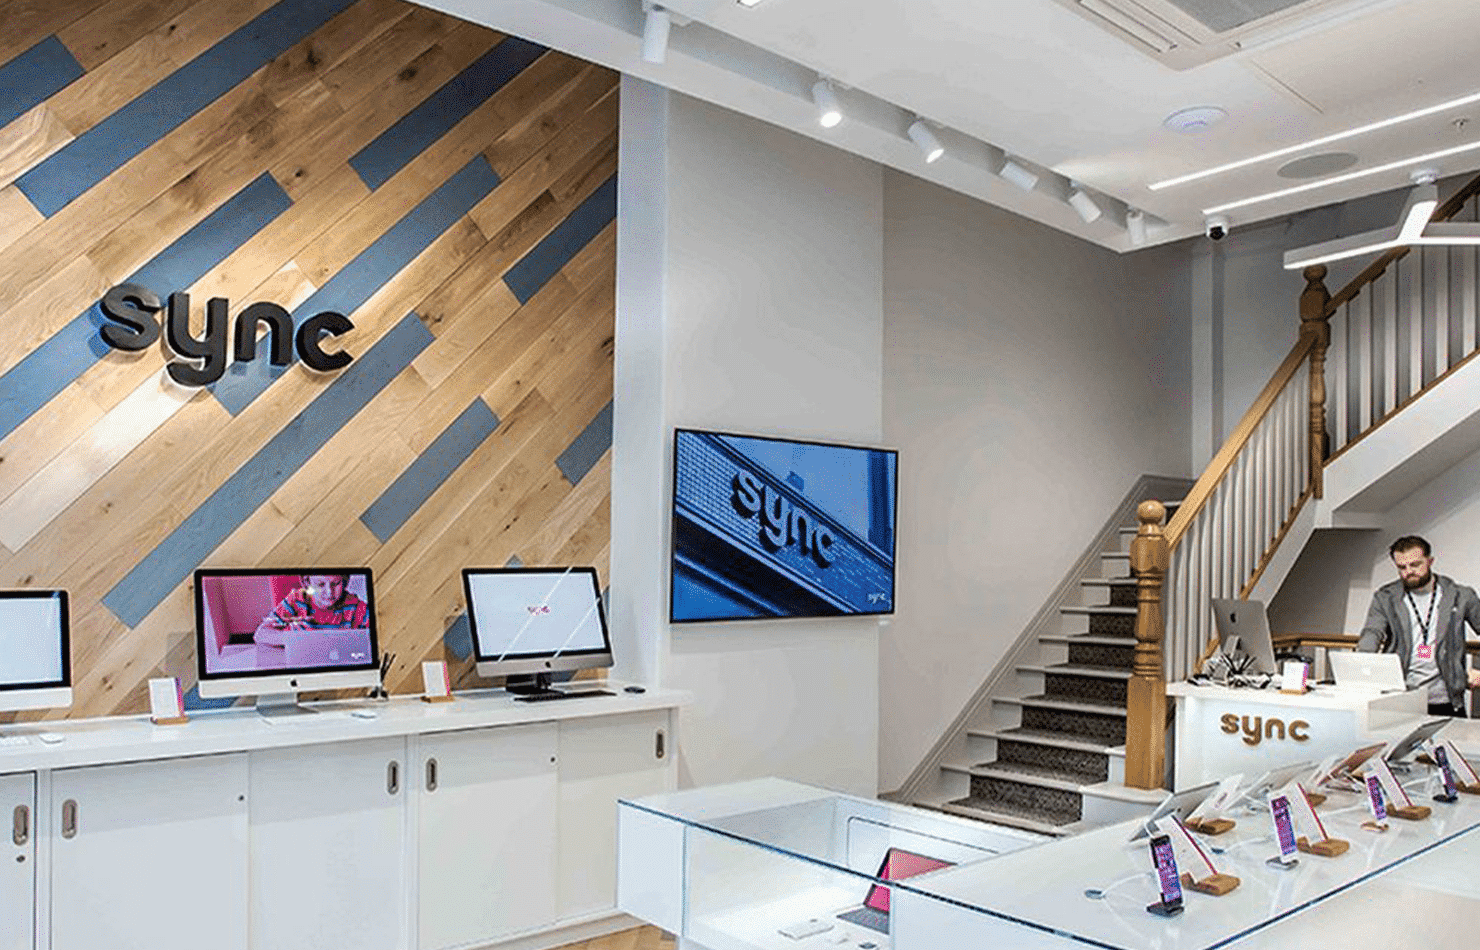 Sync Store Apple